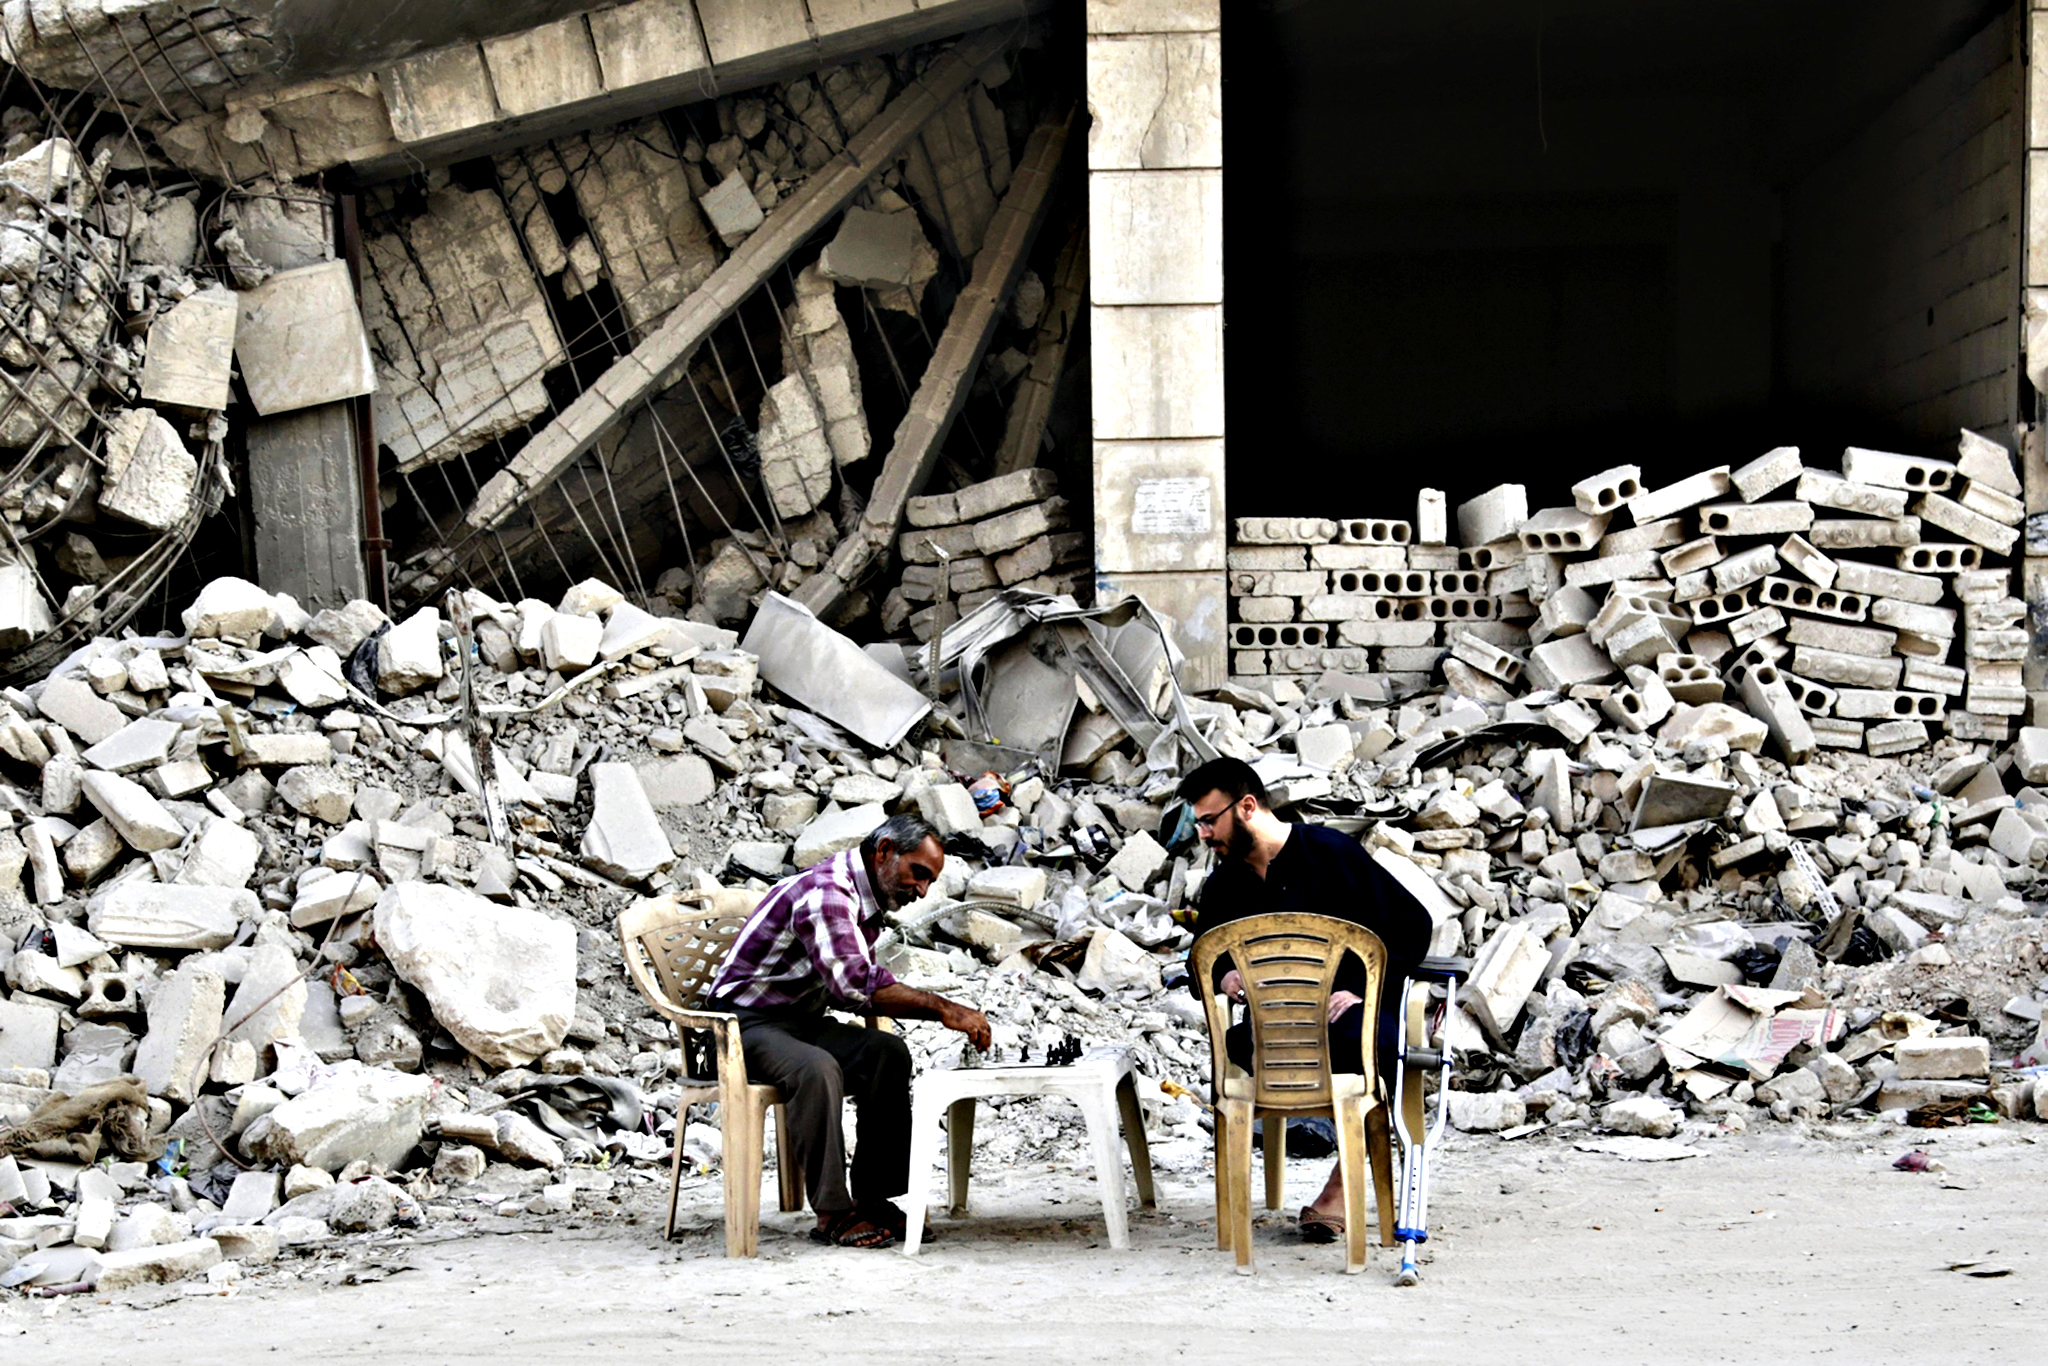 Men play chess in front of a damaged building in the rebel-controlled area of Maaret al-Naaman town in Idlib province, Syria...Men play chess in front of a damaged building in the rebel-controlled area of Maaret al-Naaman town in Idlib province, Syria October 19, 2015.